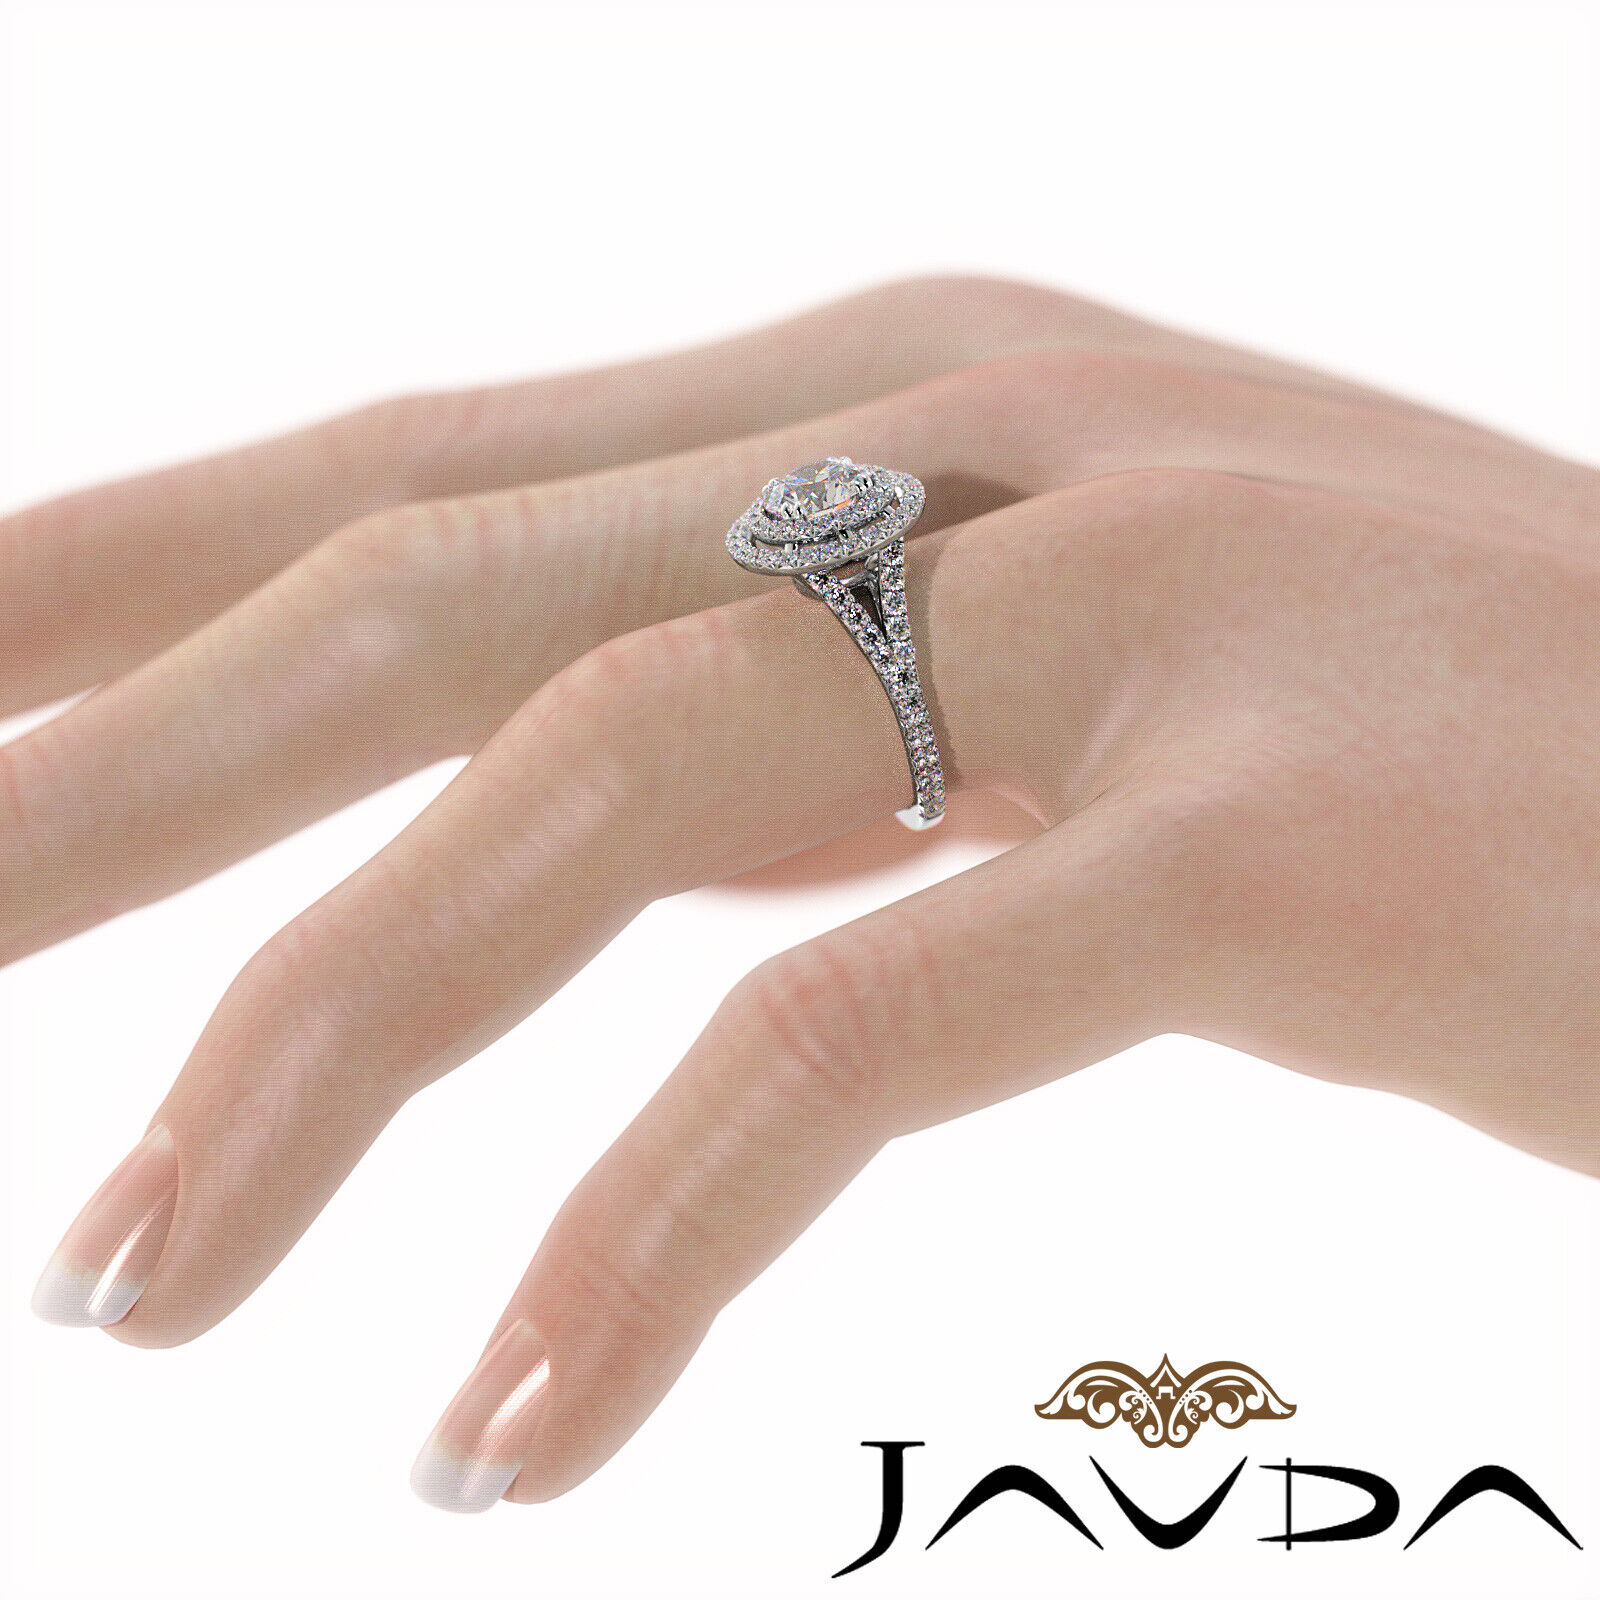 2.05ct French Pave Gala Halo Round Diamond Engagement Ring GIA F-VVS1 White Gold 4